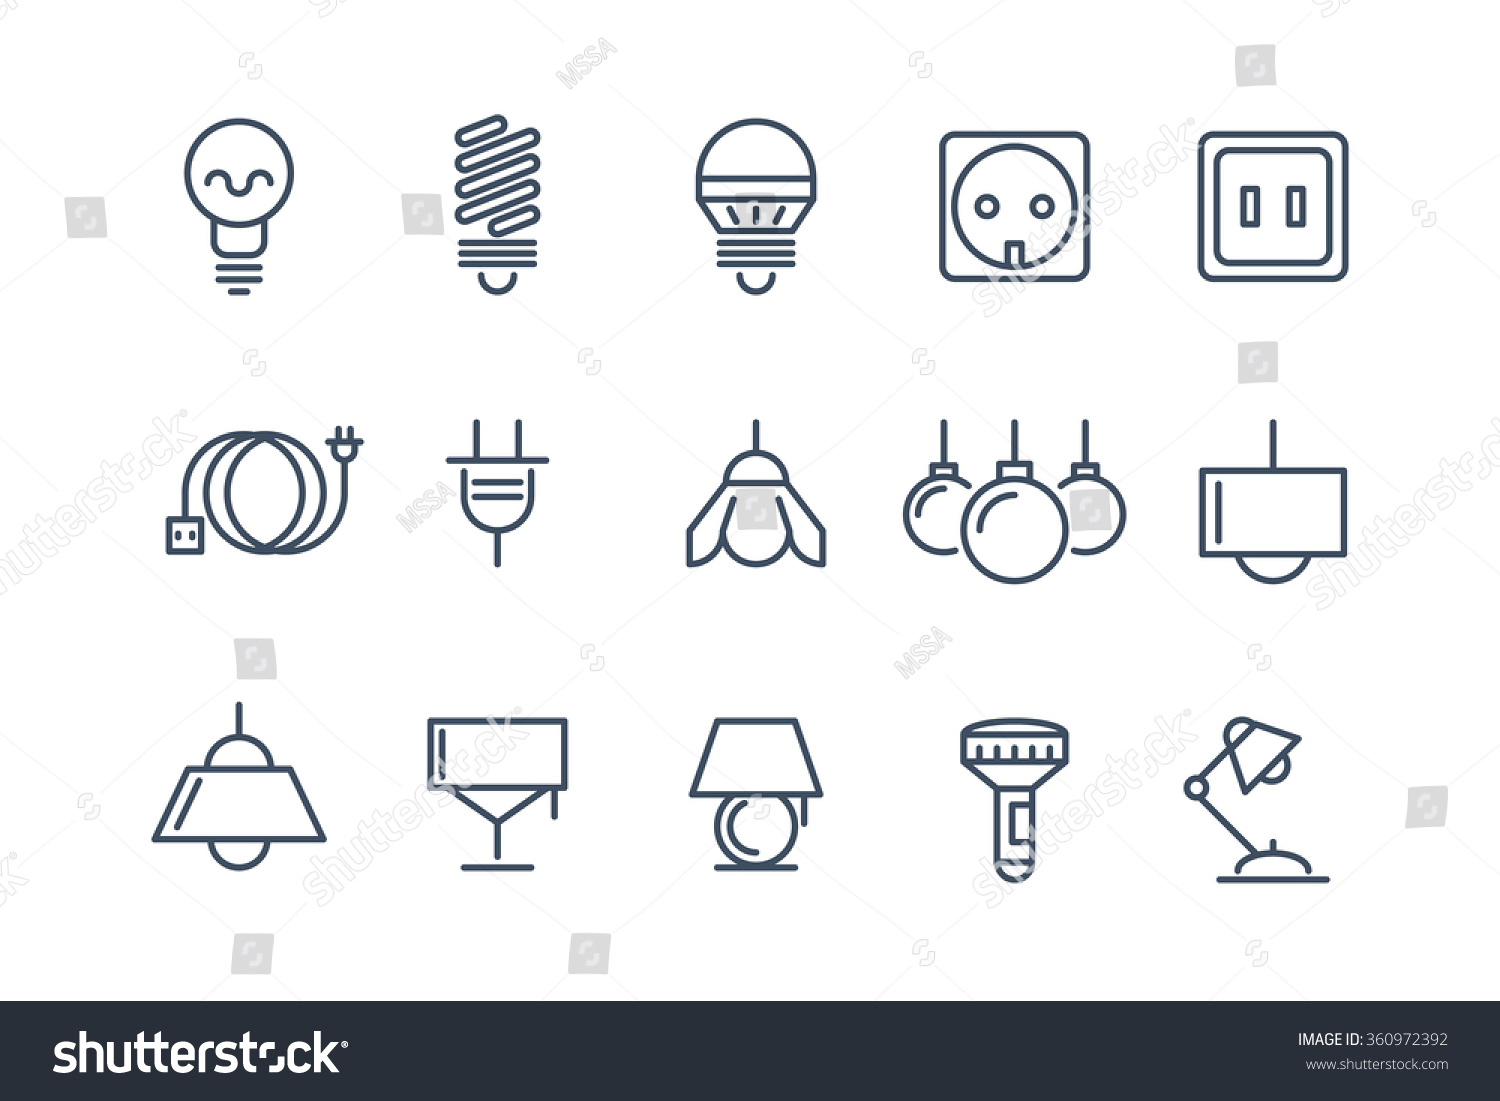 Icons Shapes Stencils And Symbols Electrical Symbols Switches